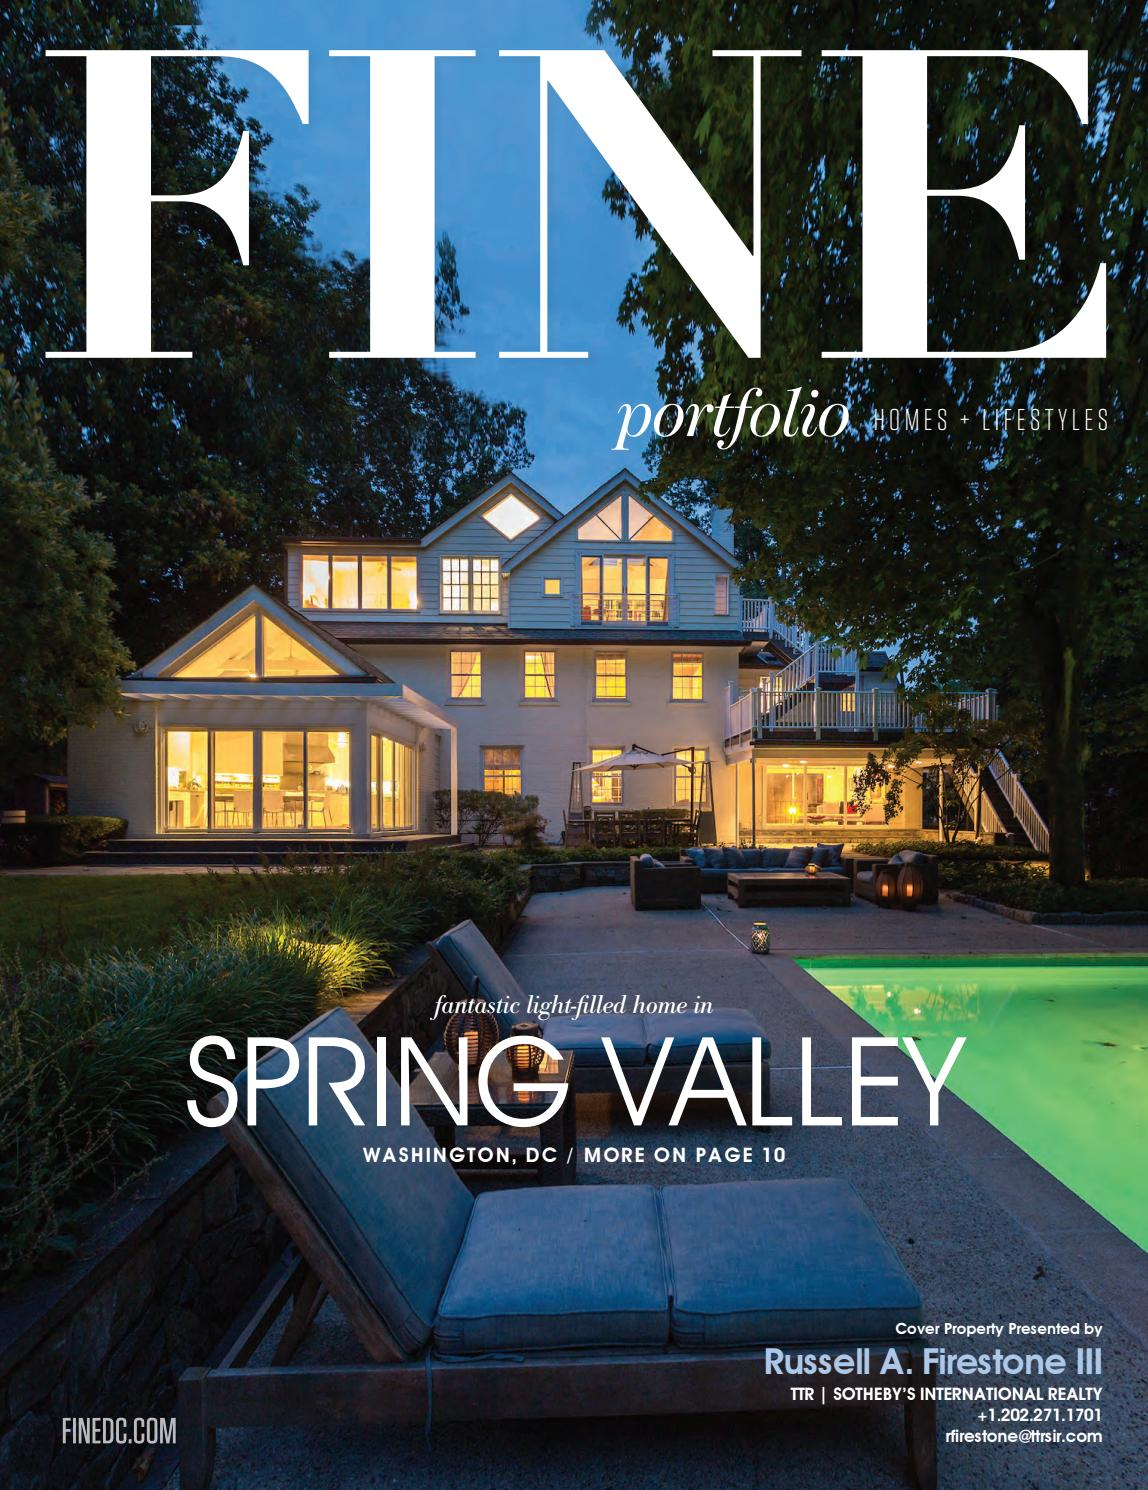 FINE Portfolio | 5/17 | Washington, DC Metro Area by FINEdc